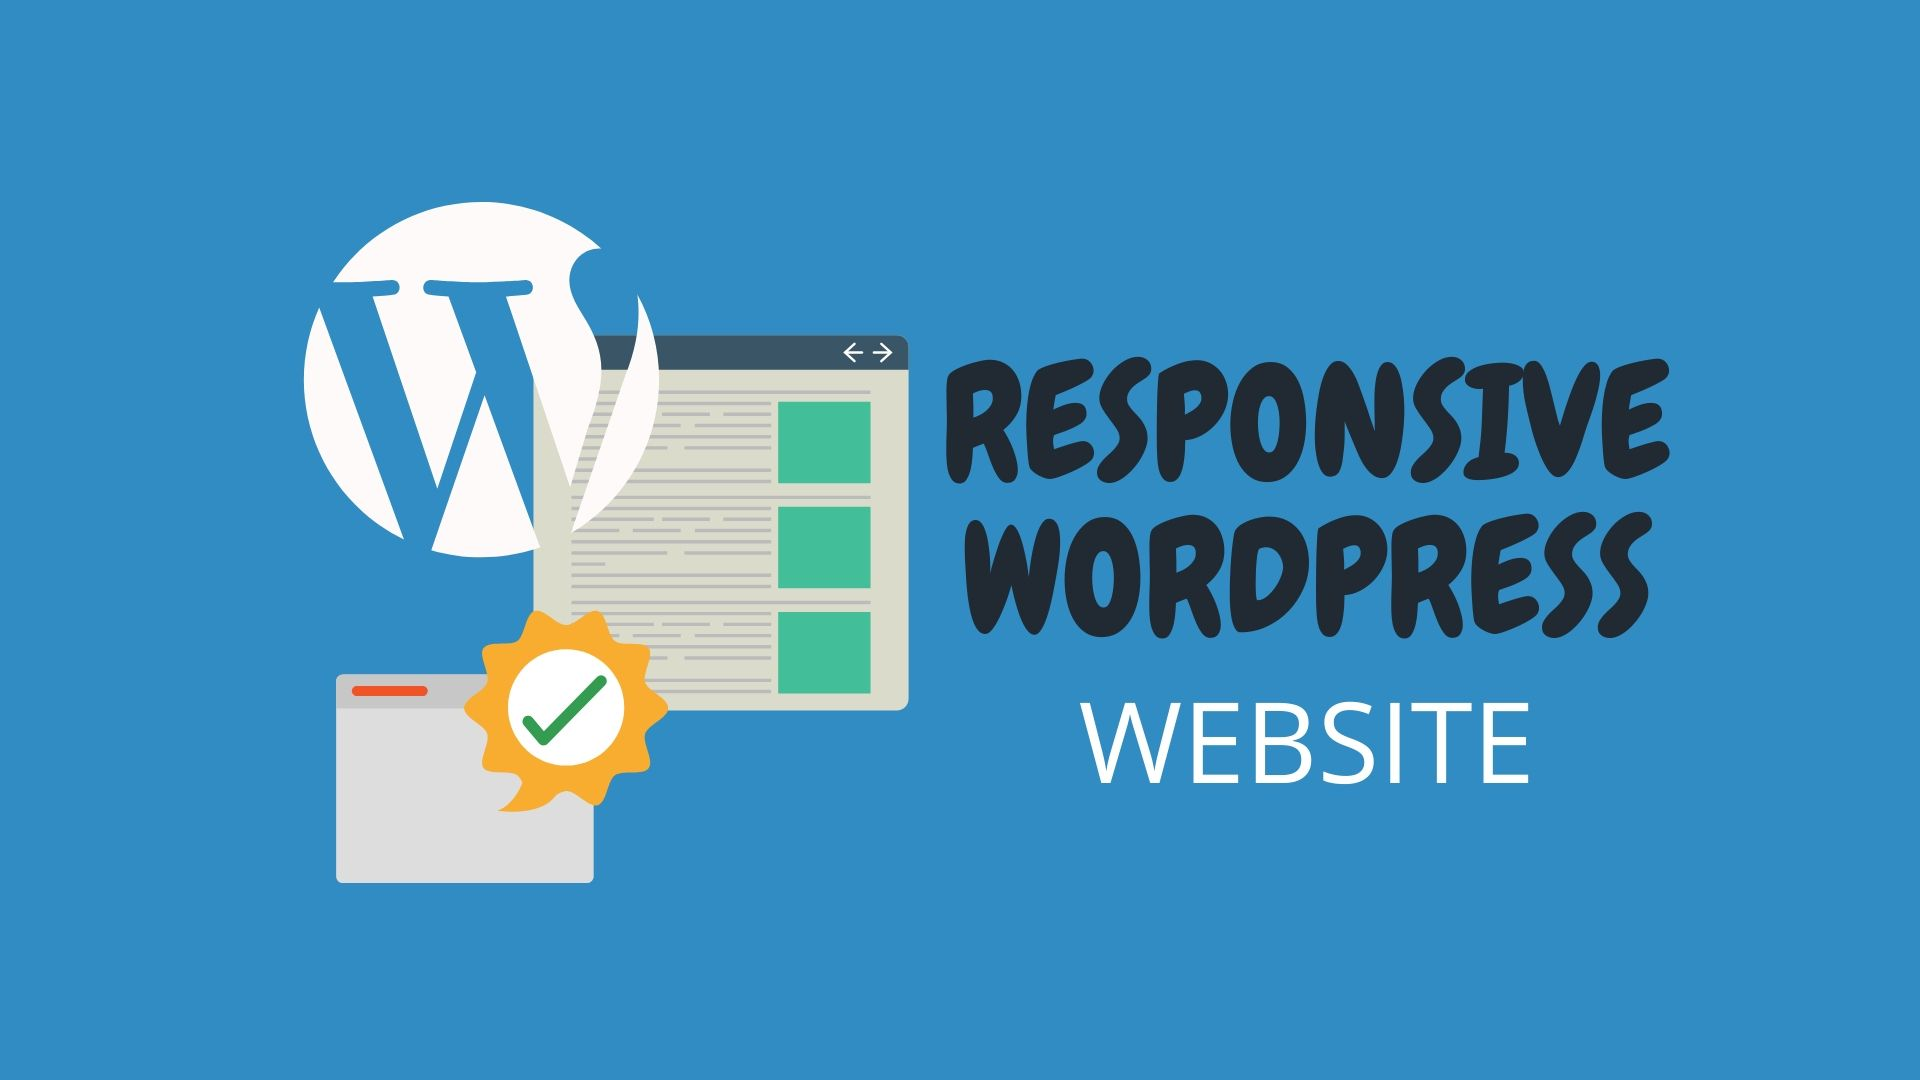 i will create a complete wordpress responsive website for you